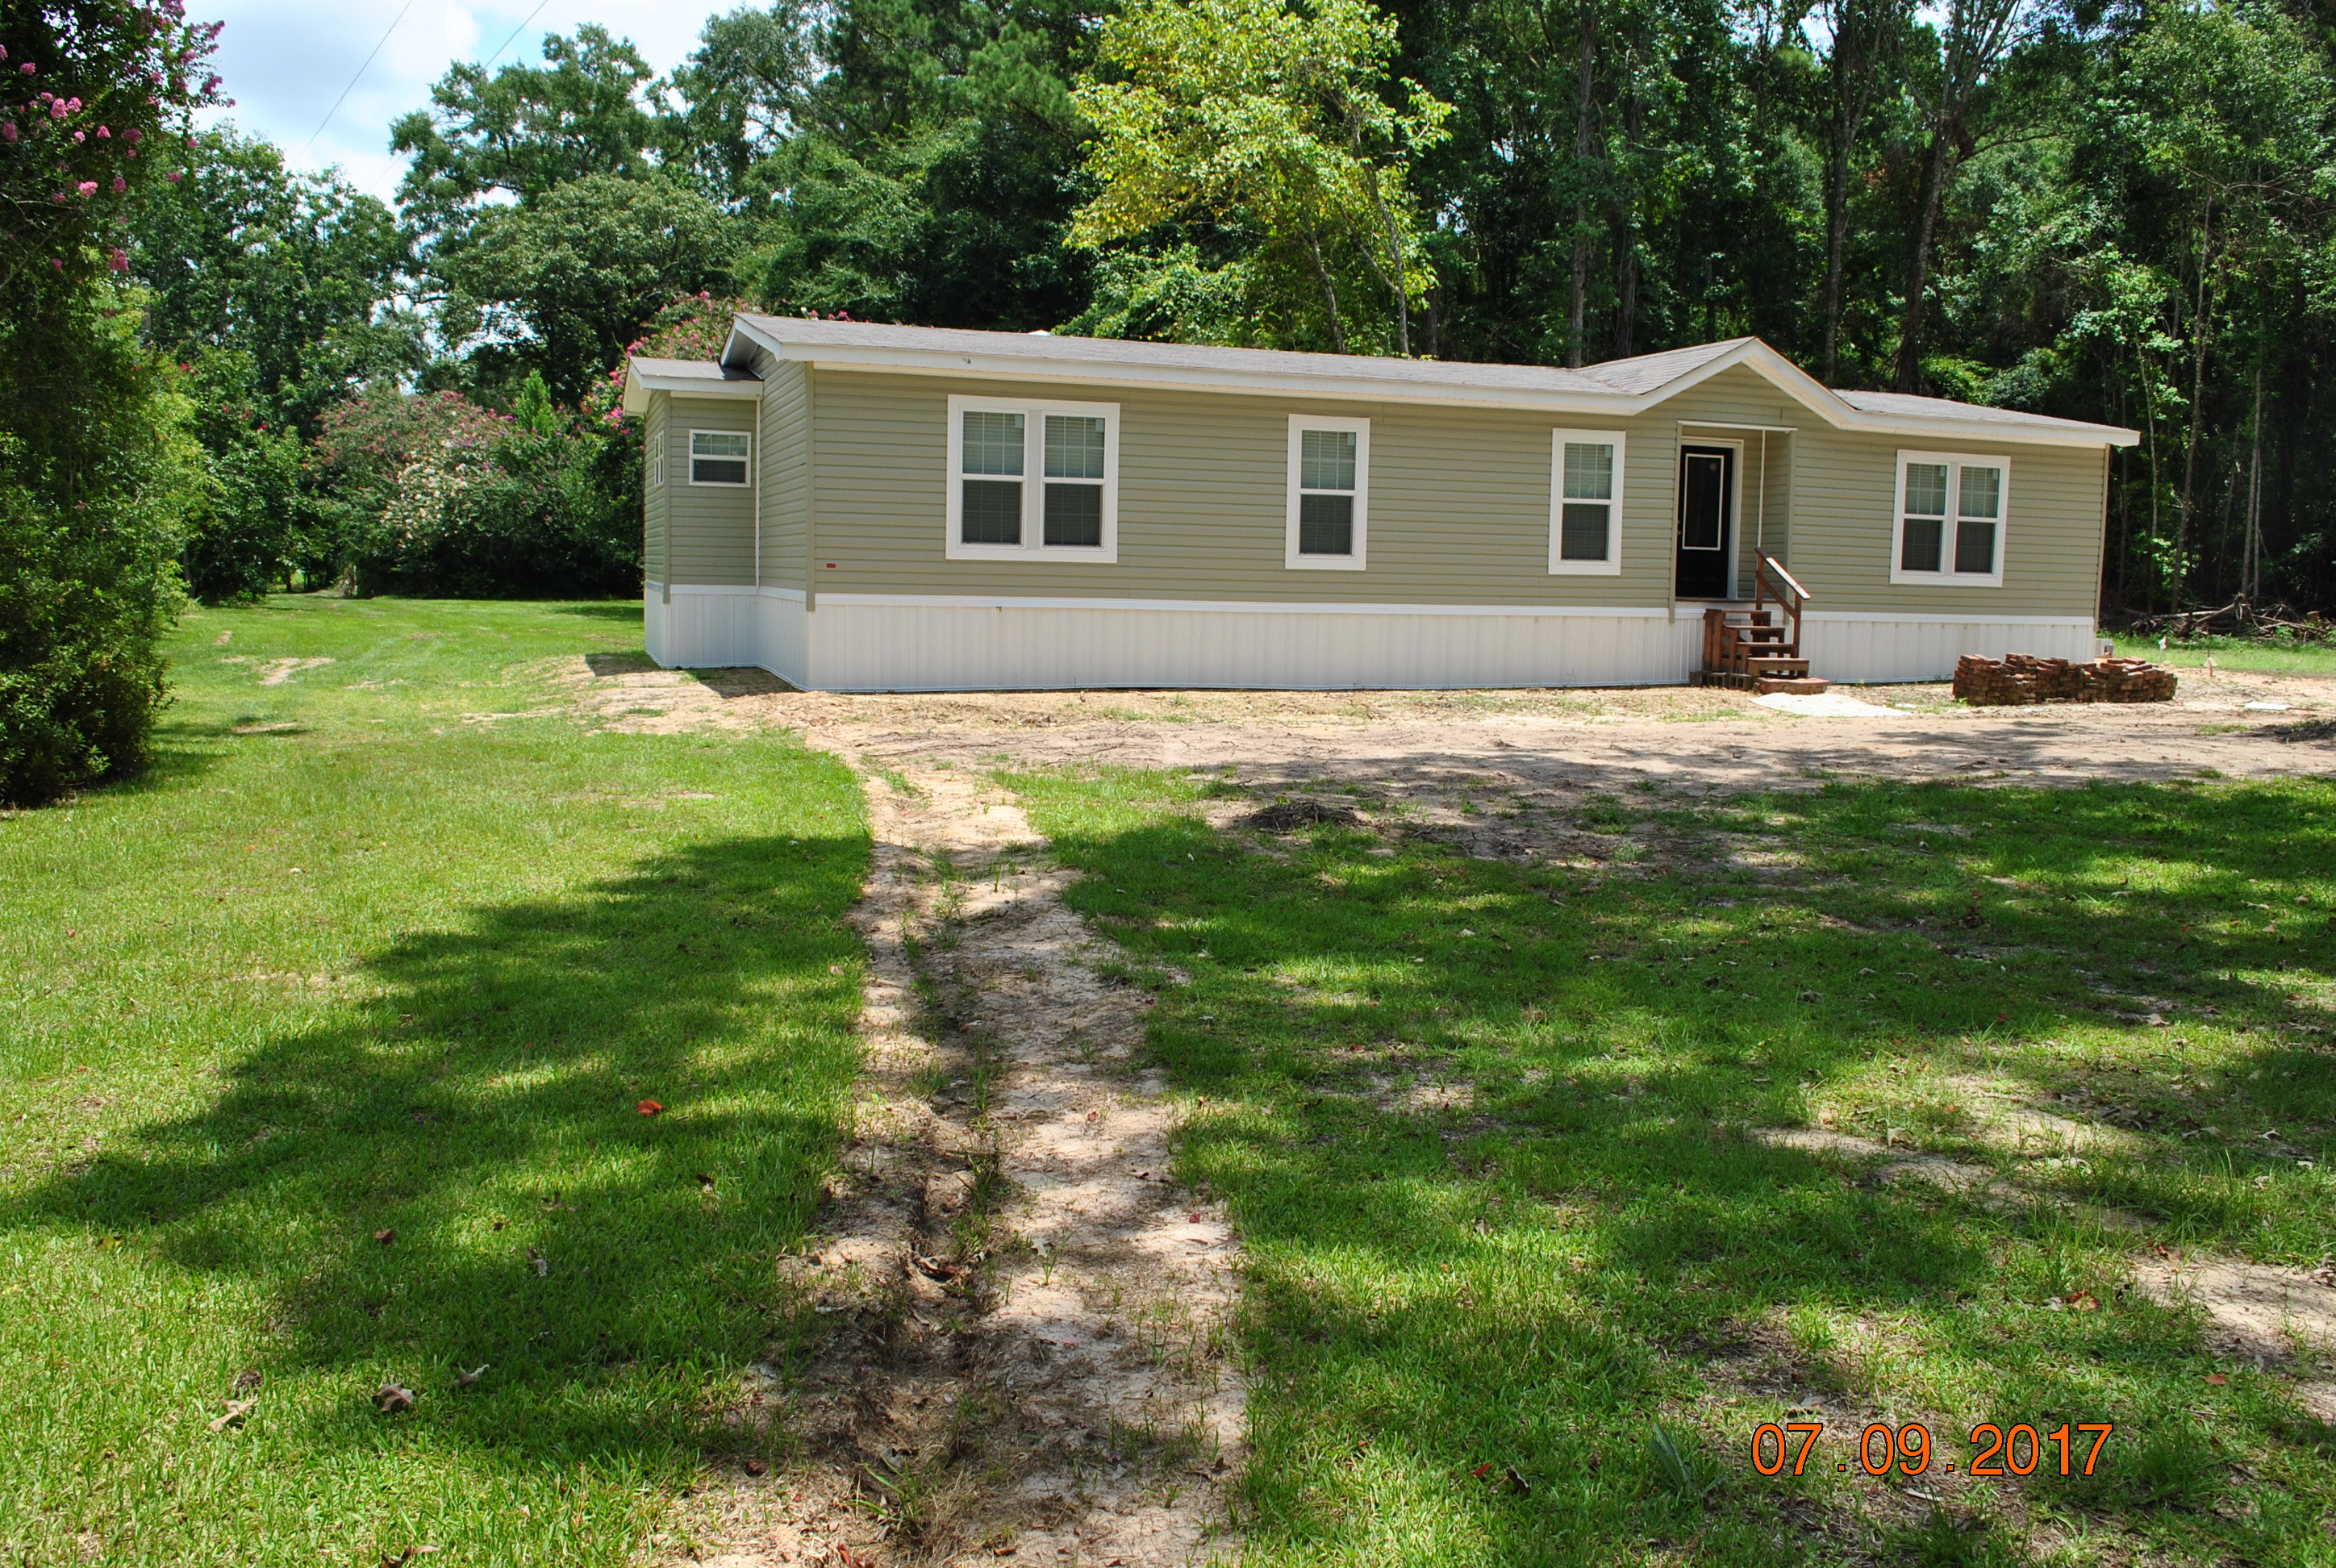 mobile homes for sale in lafayette la html with Evangeline Home Center Mobile Homes Of Southwest Louisiana on Singlewide Mobile Homes 3011 Pic also 3yd KW 1783 17000584 further Shed Home Floor Plans together with Shop Stool as well Evangeline Home Center Mobile Homes Of Southwest Louisiana.